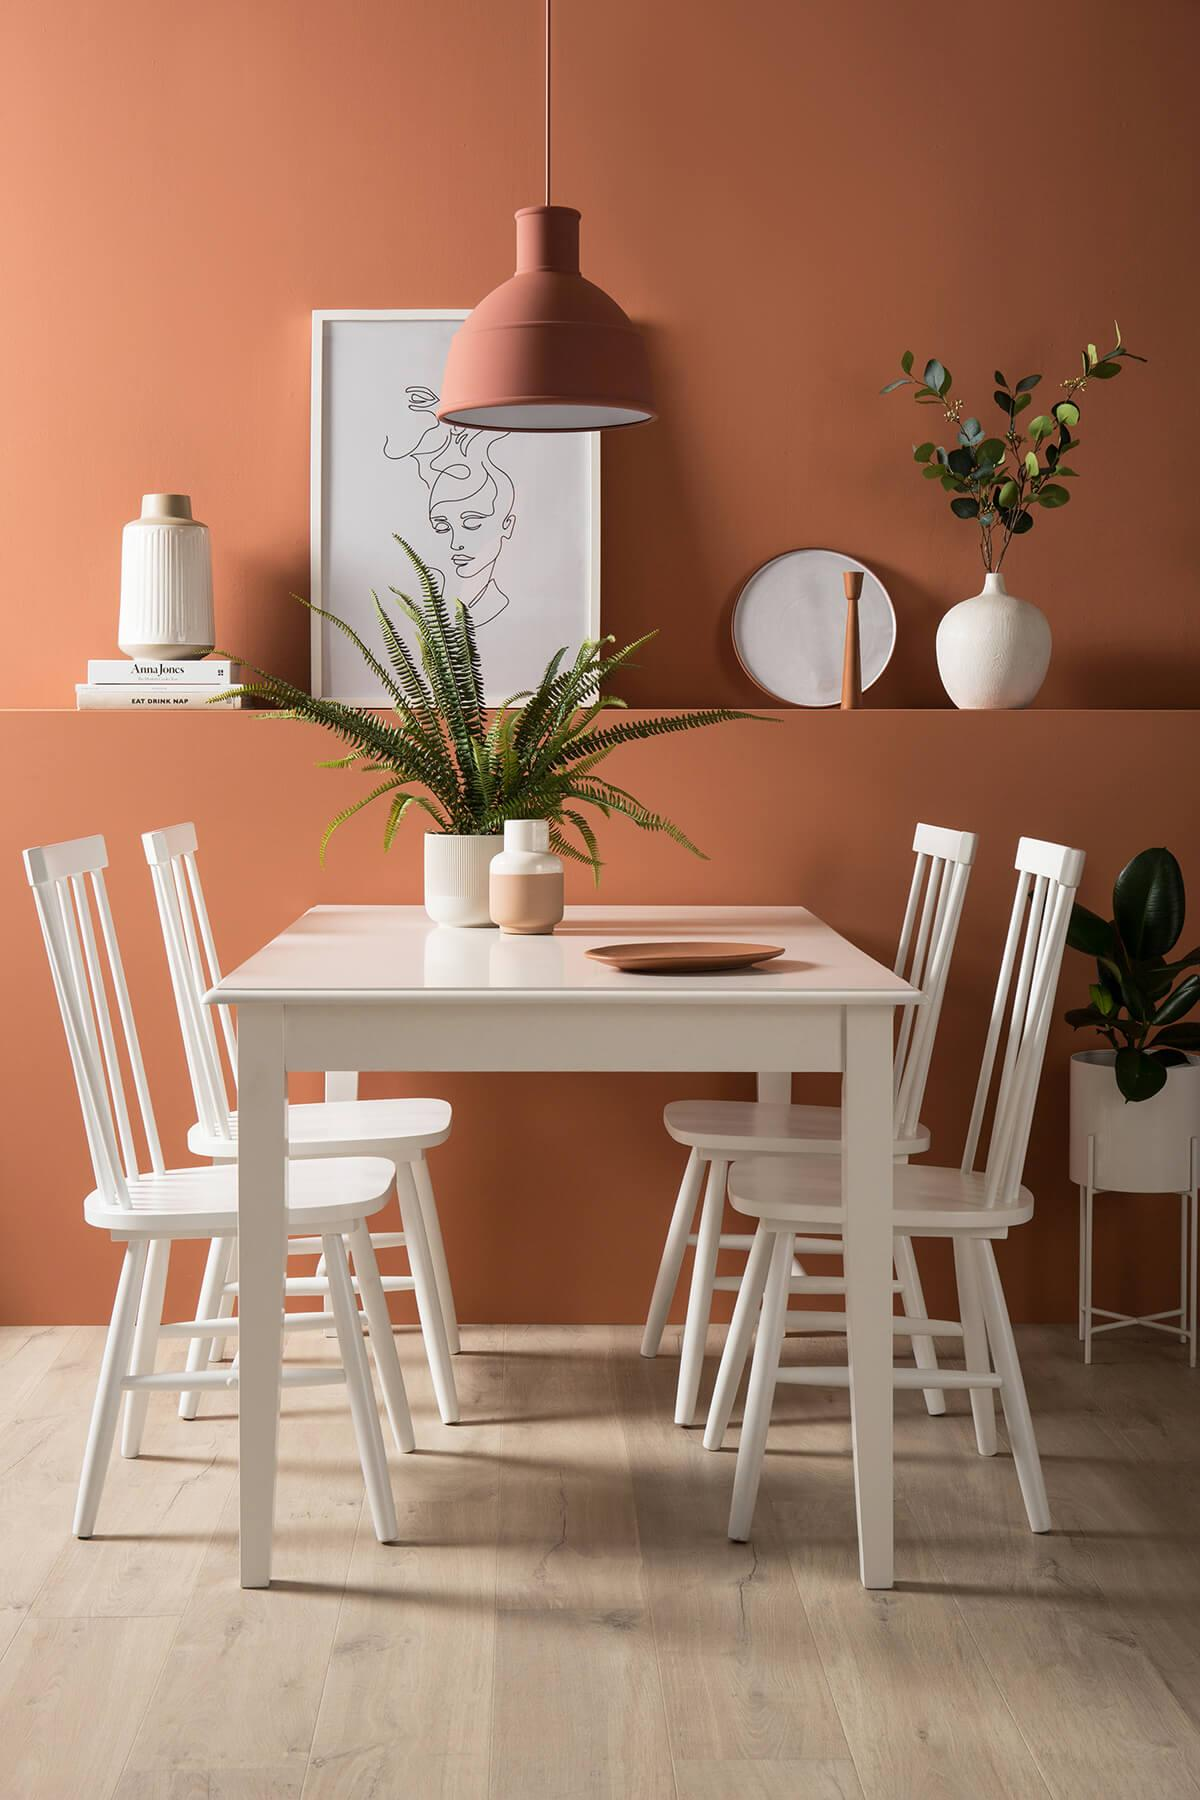 Nordic design inspired dining room with canyon clay walls and white dining set.